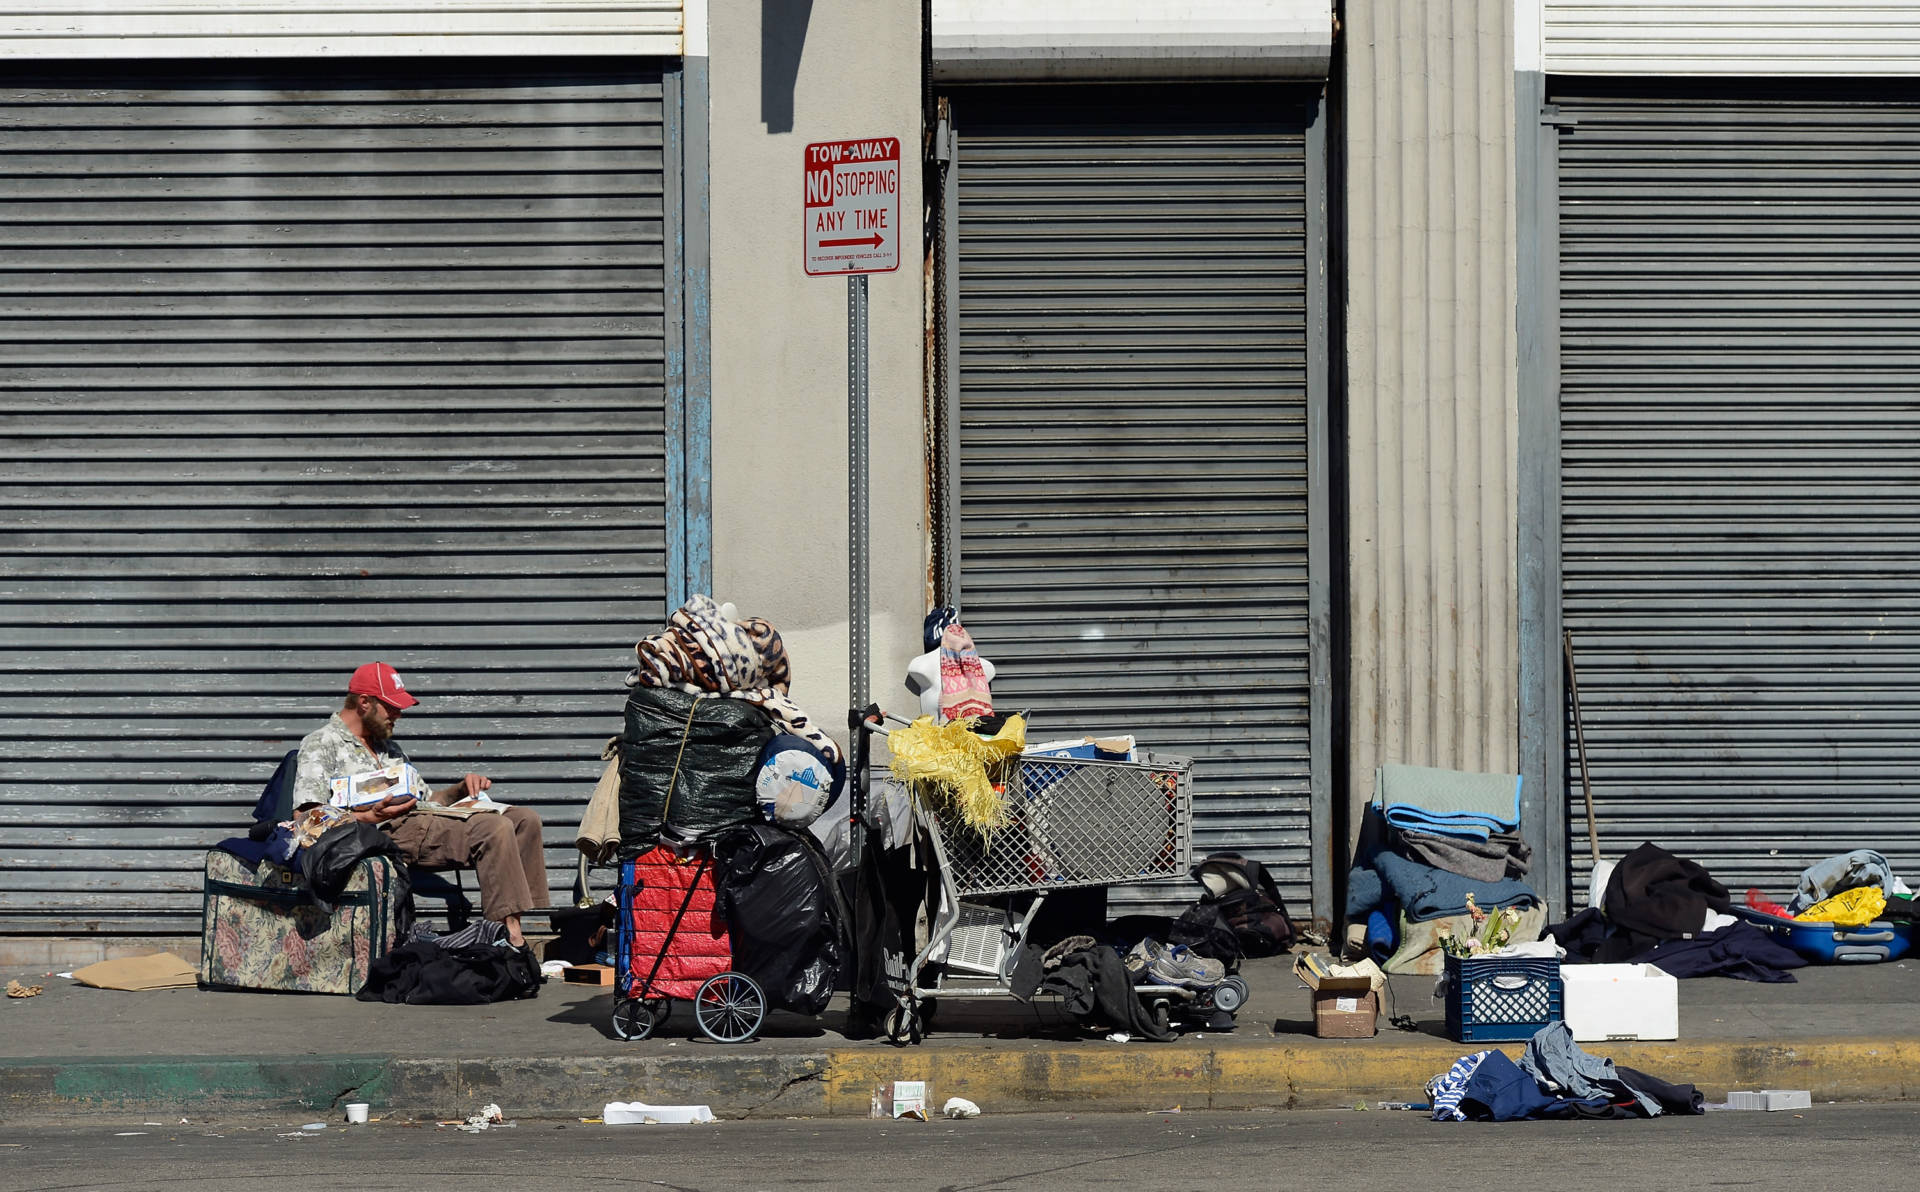 LOS ANGELES, CA - FEBRUARY 28: Homeless people rest on a public sidewalk February 28, 2013 in downtown skid row area of Los Angeles, California.